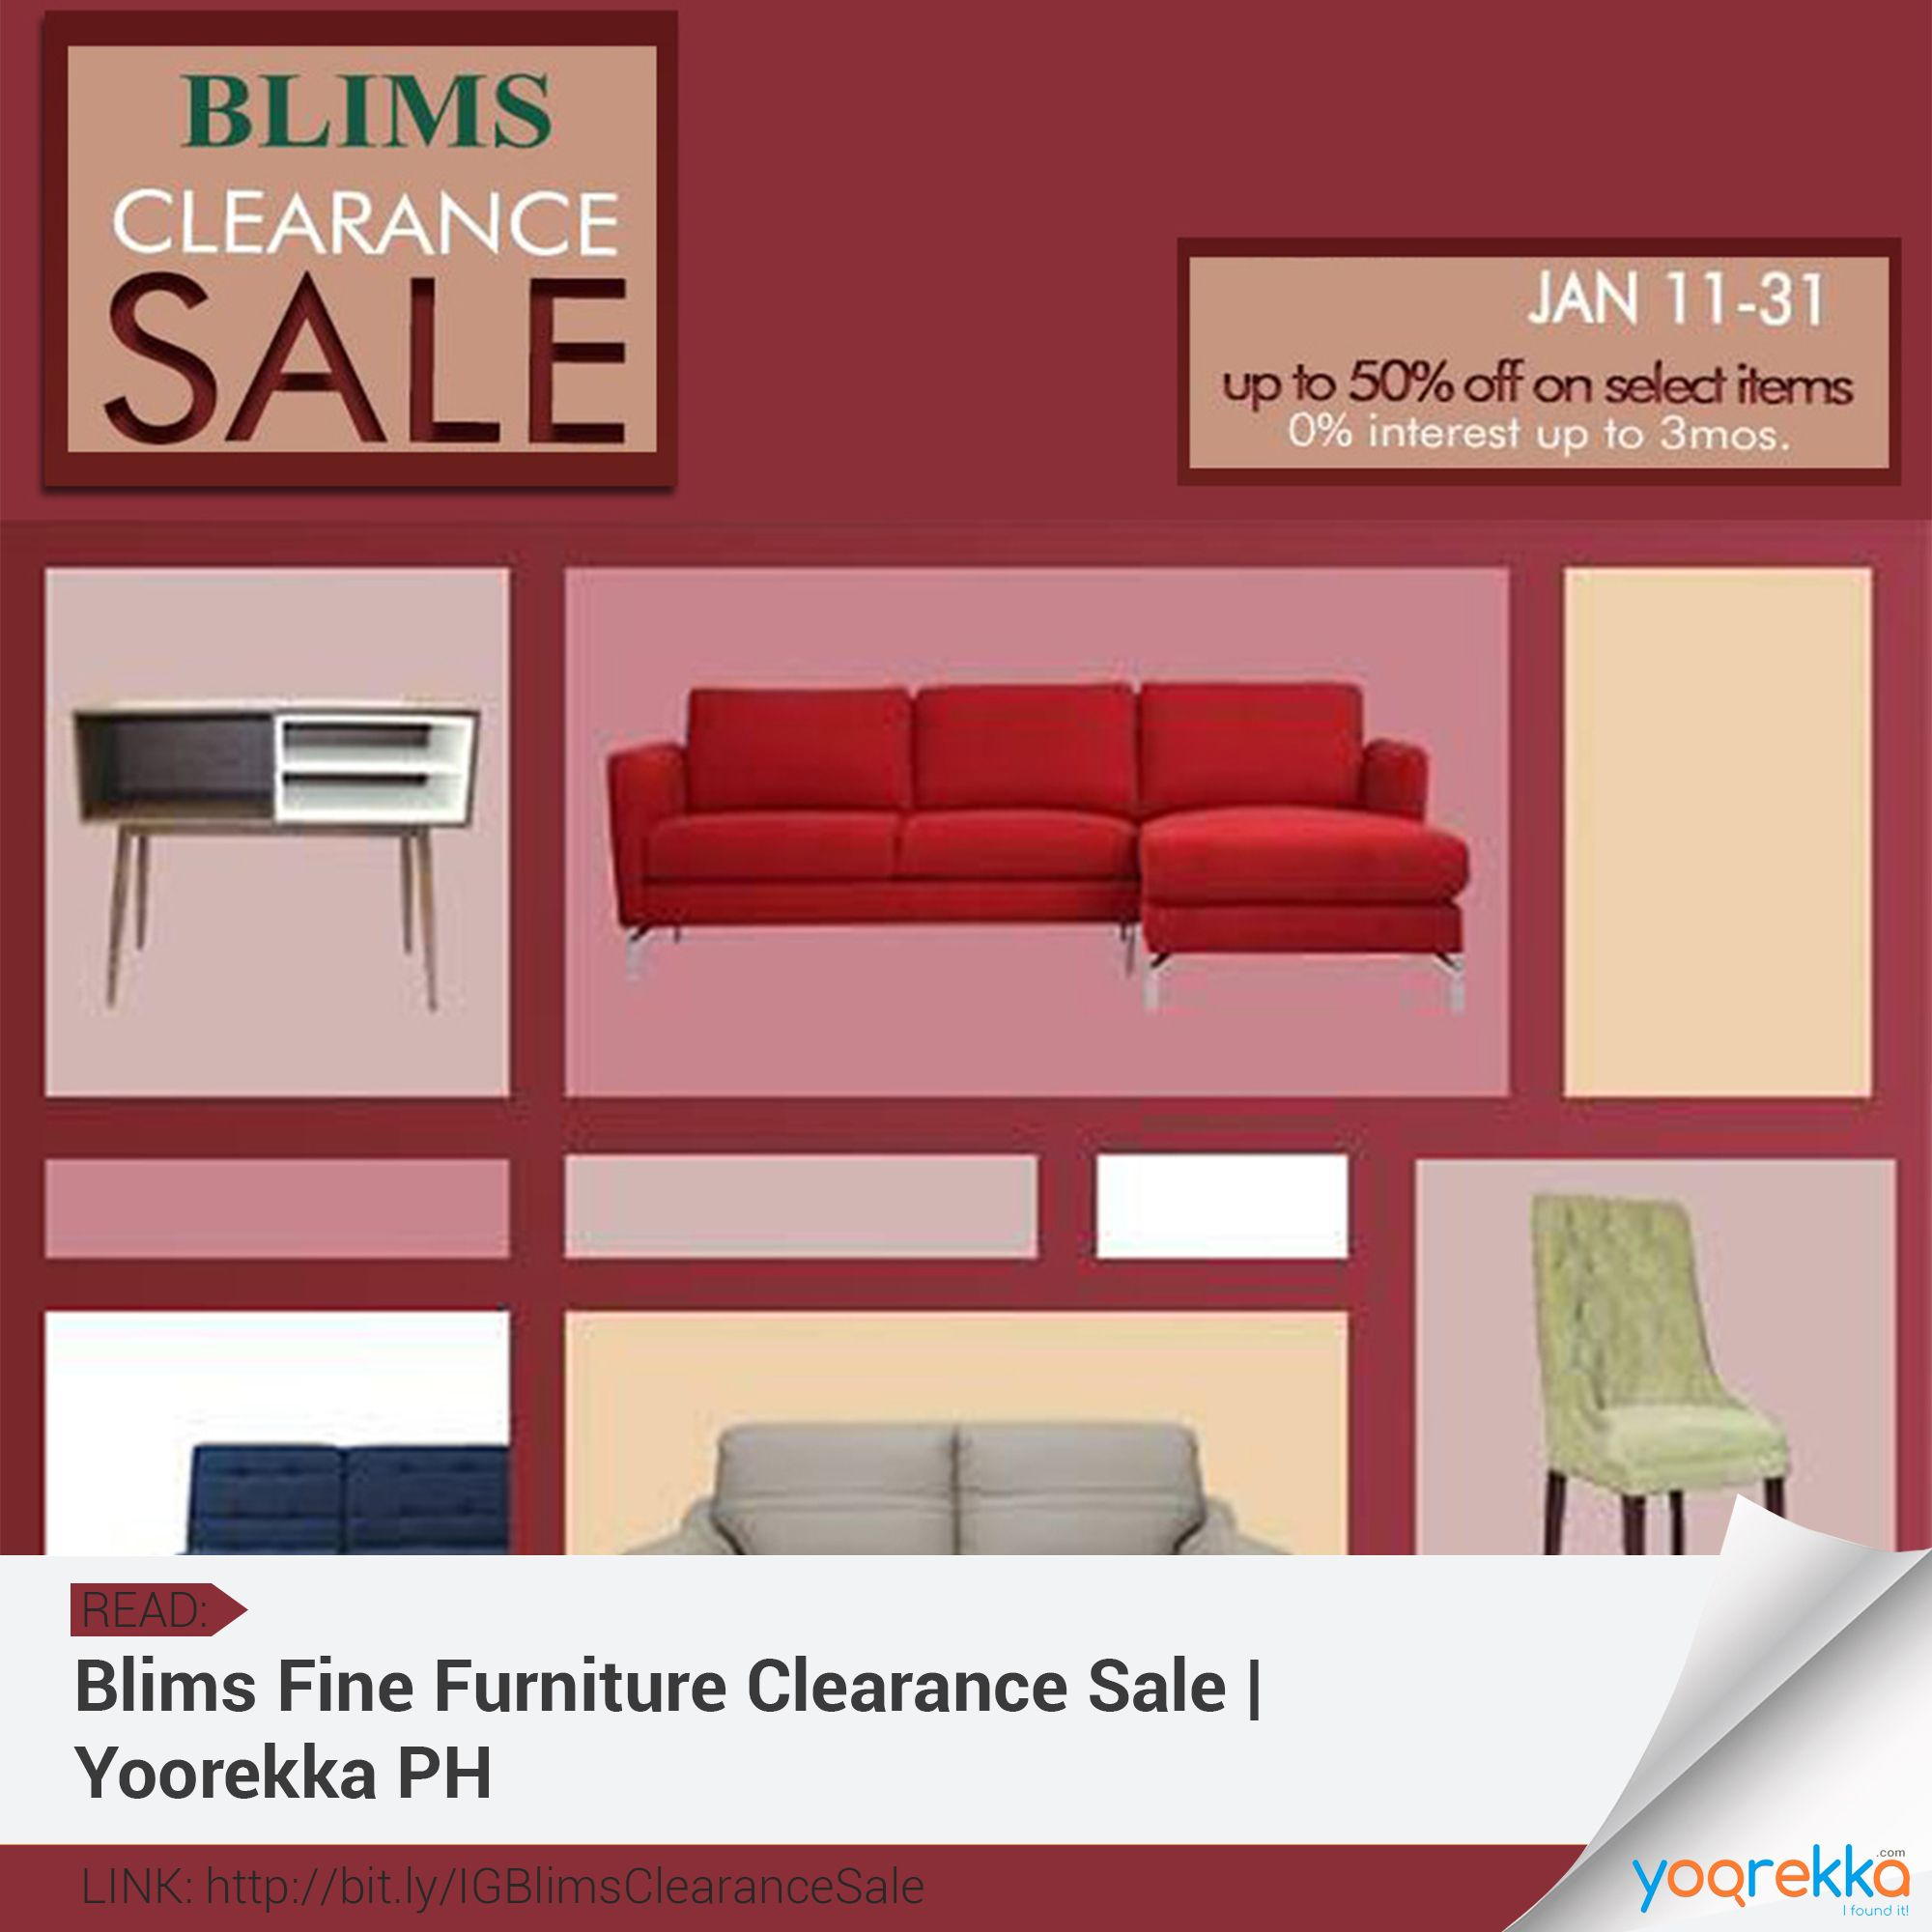 Blims Fine Furniture Clearance Sale Up To 50 Off On Selected